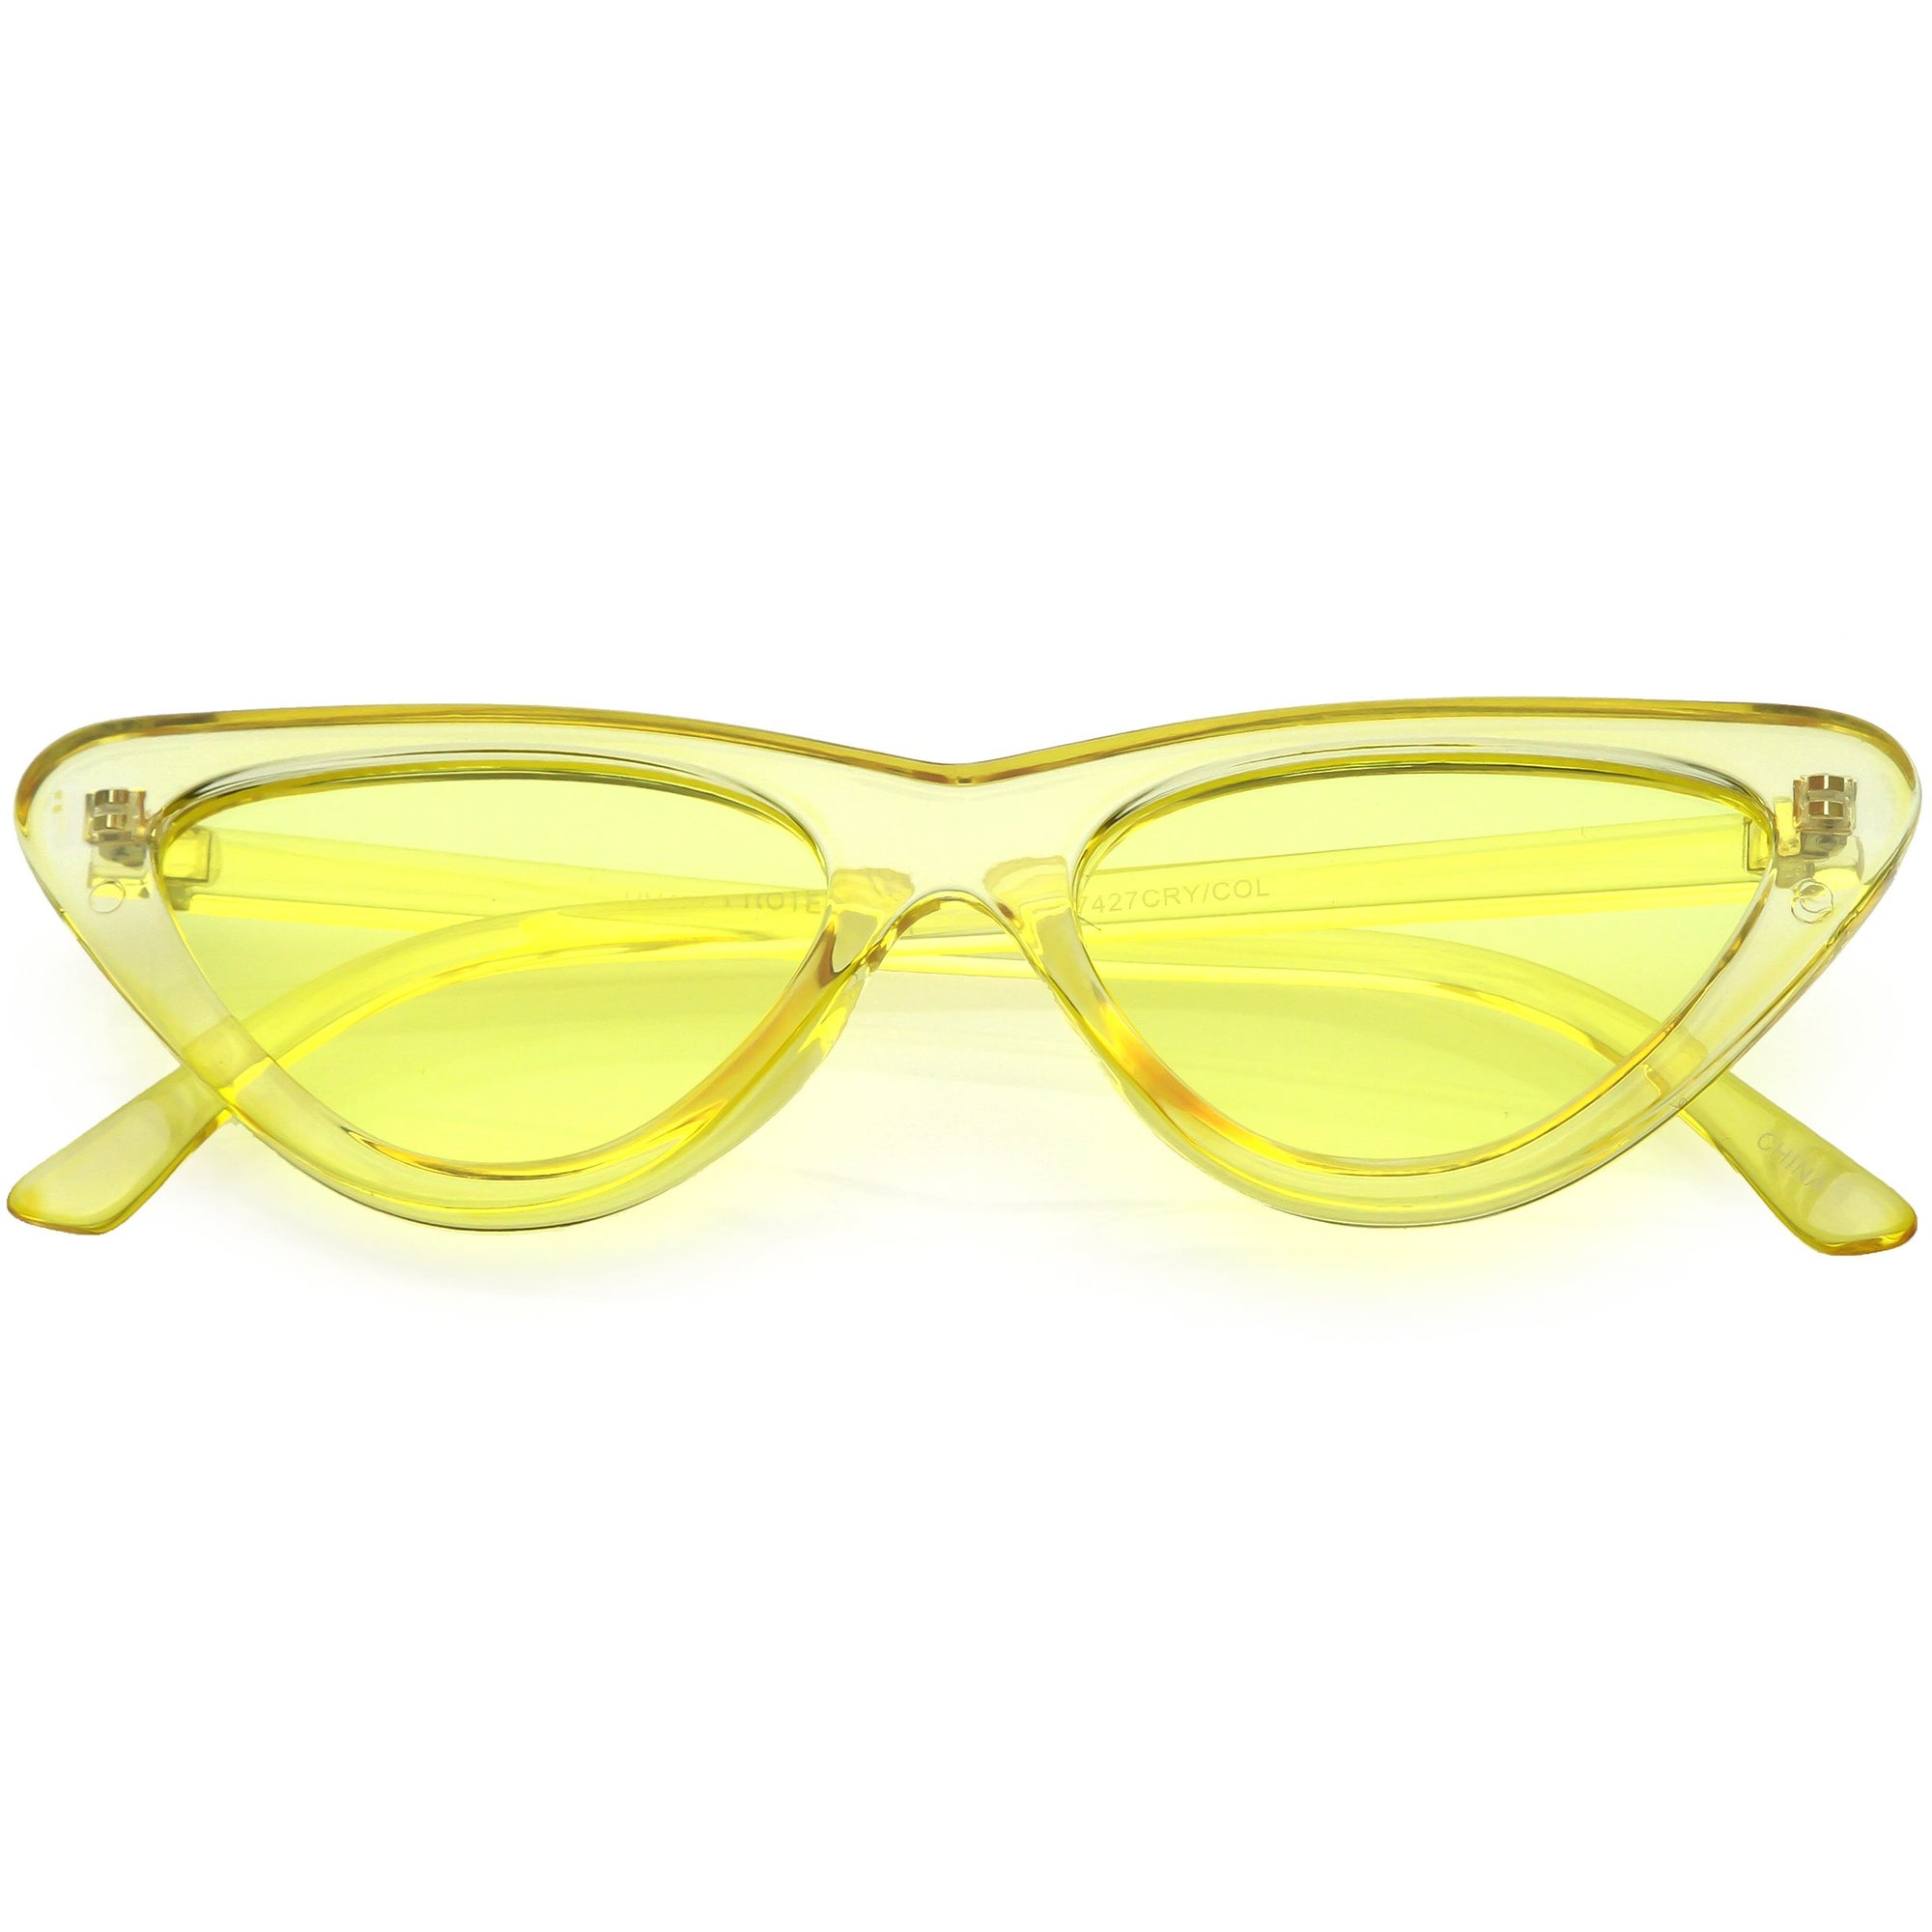 7fad4f7a3fd1 Women's Colorful Retro Indie Festival Thin Cat Eye Sunglasses - zeroUV